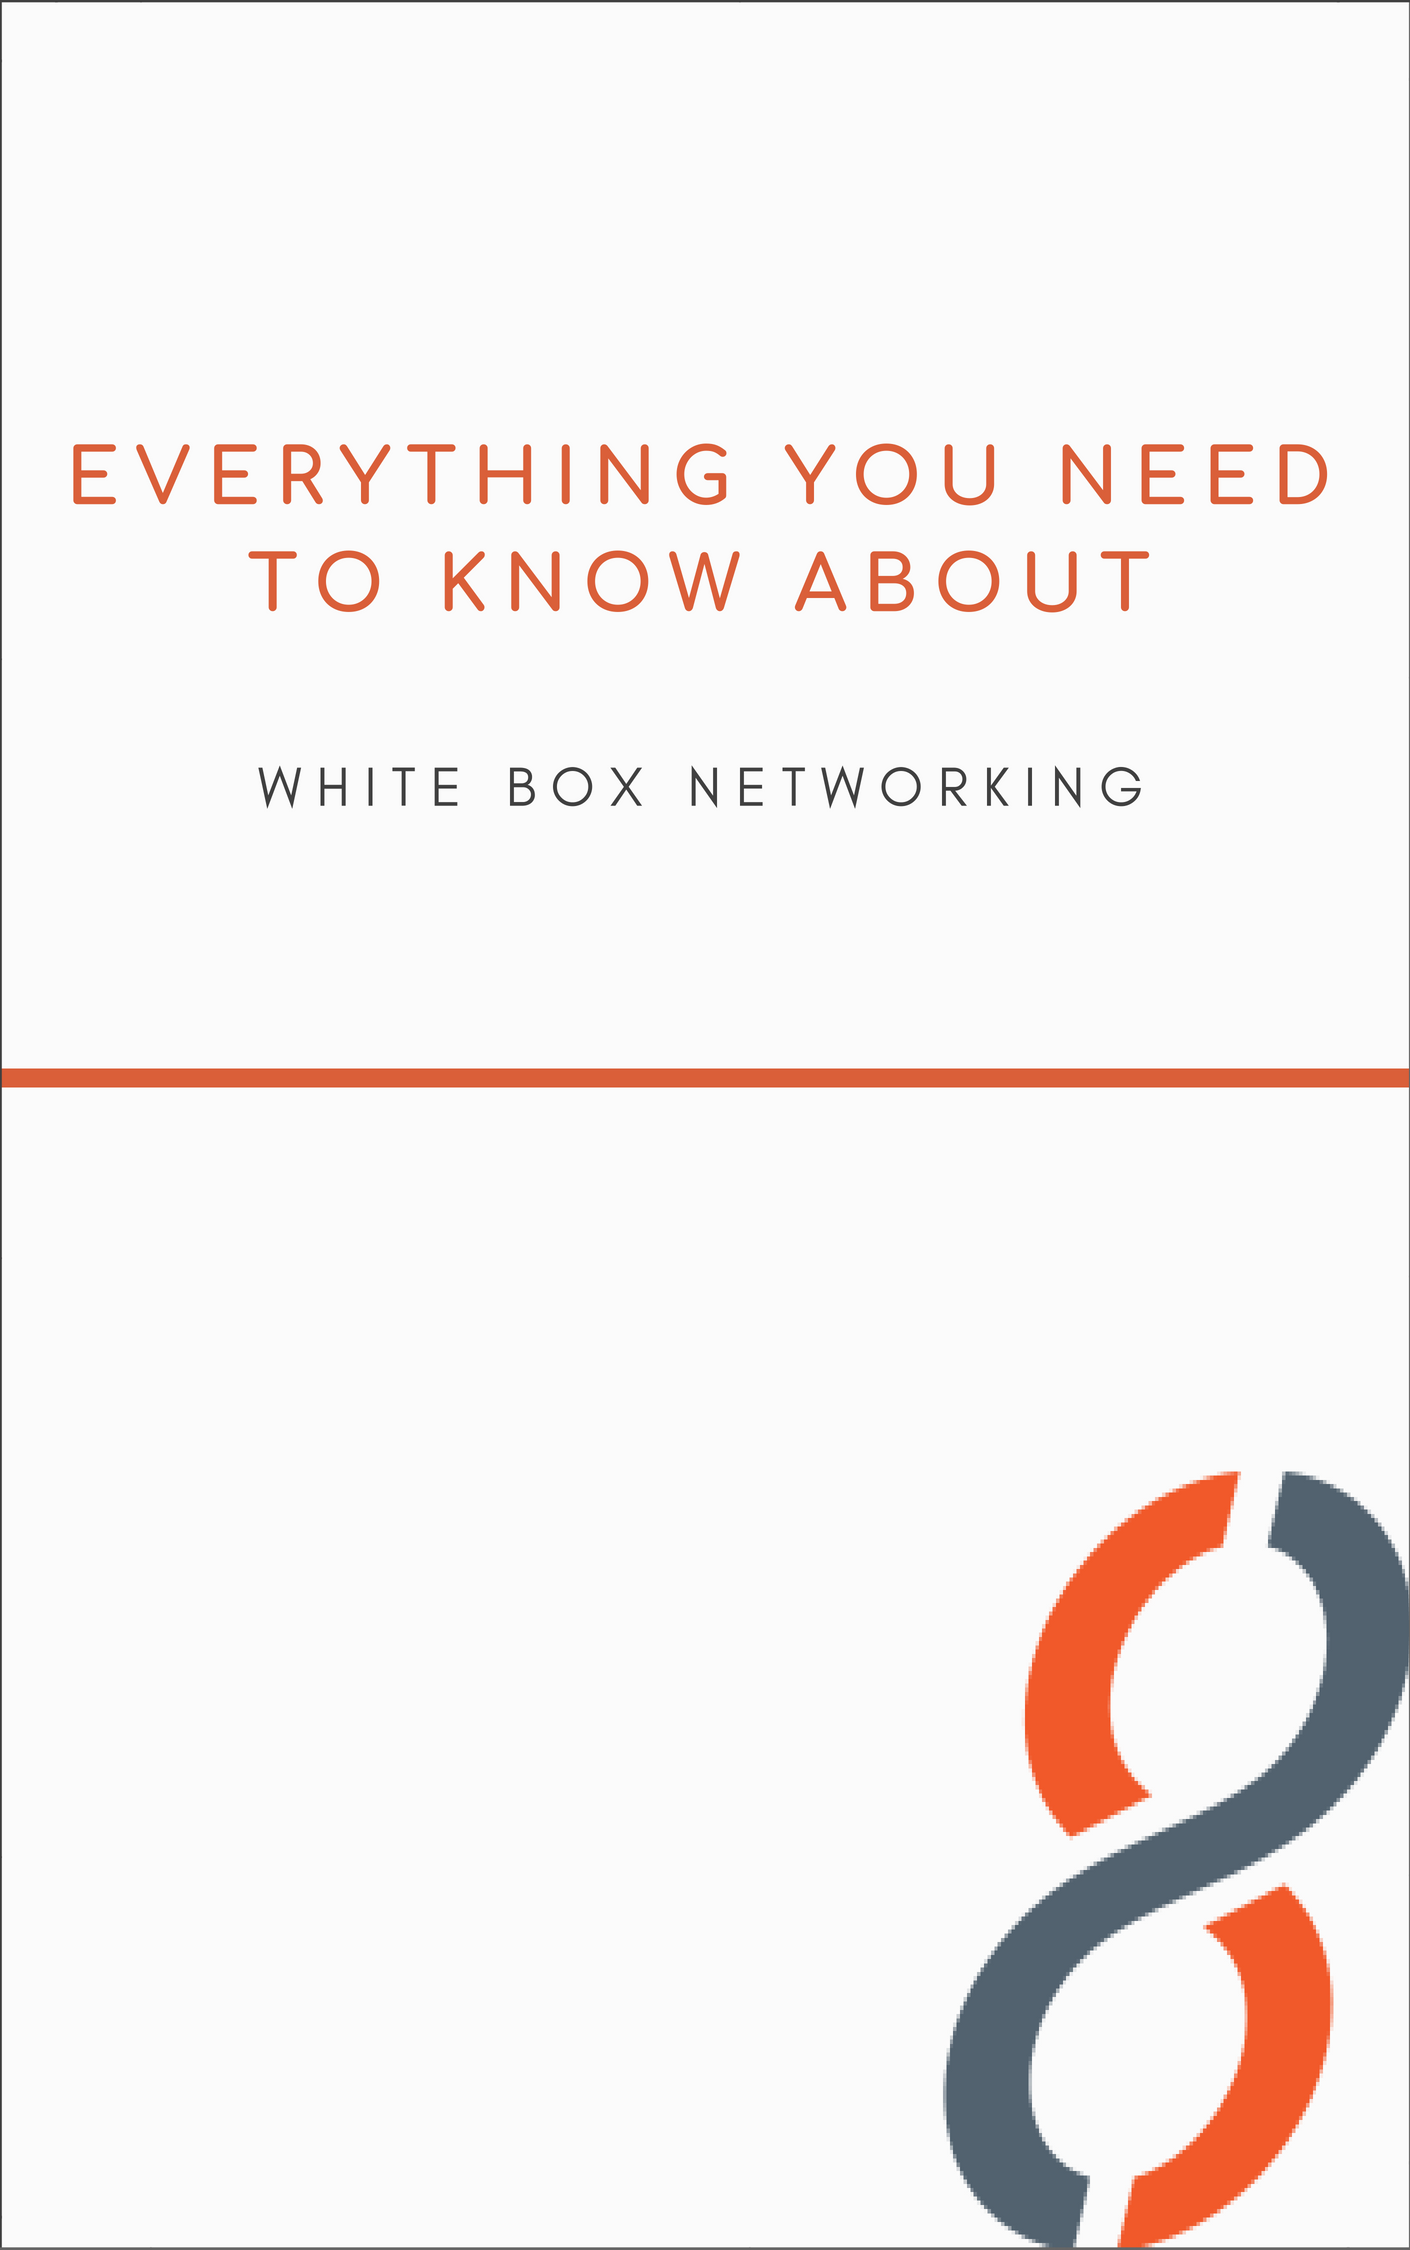 White Box Networking_Image (1)